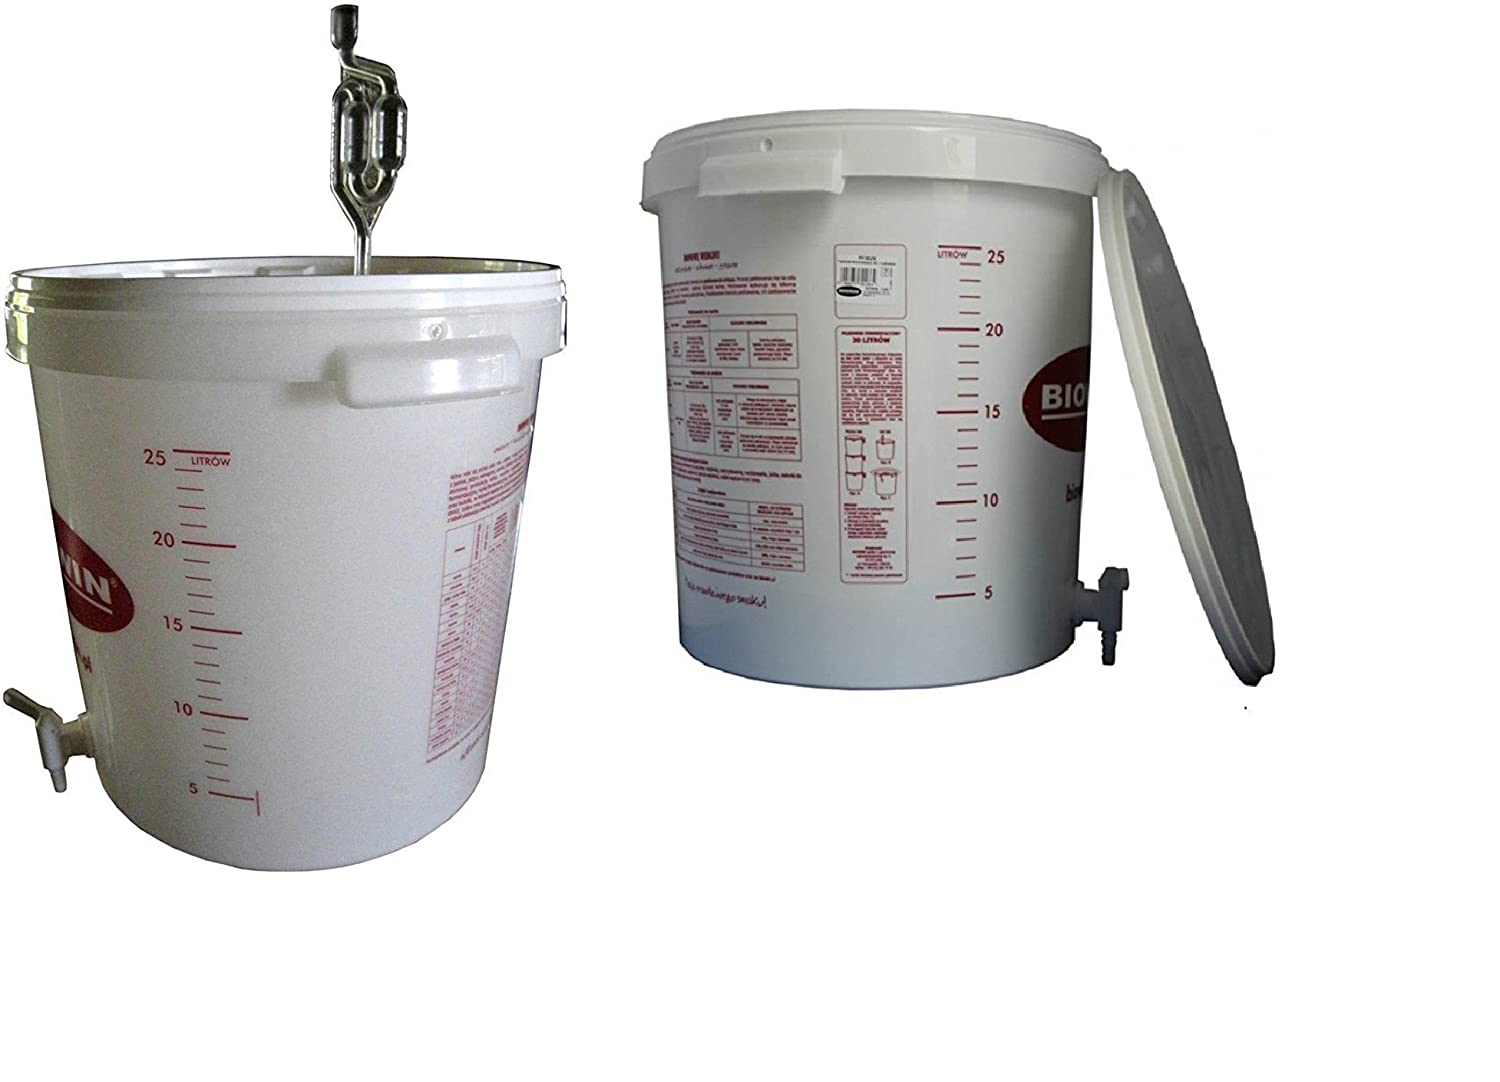 30 Litre Fermenting Switch Fermentation Bucket for Beer or Wine with Drain Tap and Single Airlock Bubbler FREE SAME DAY POSTAGE bro-win